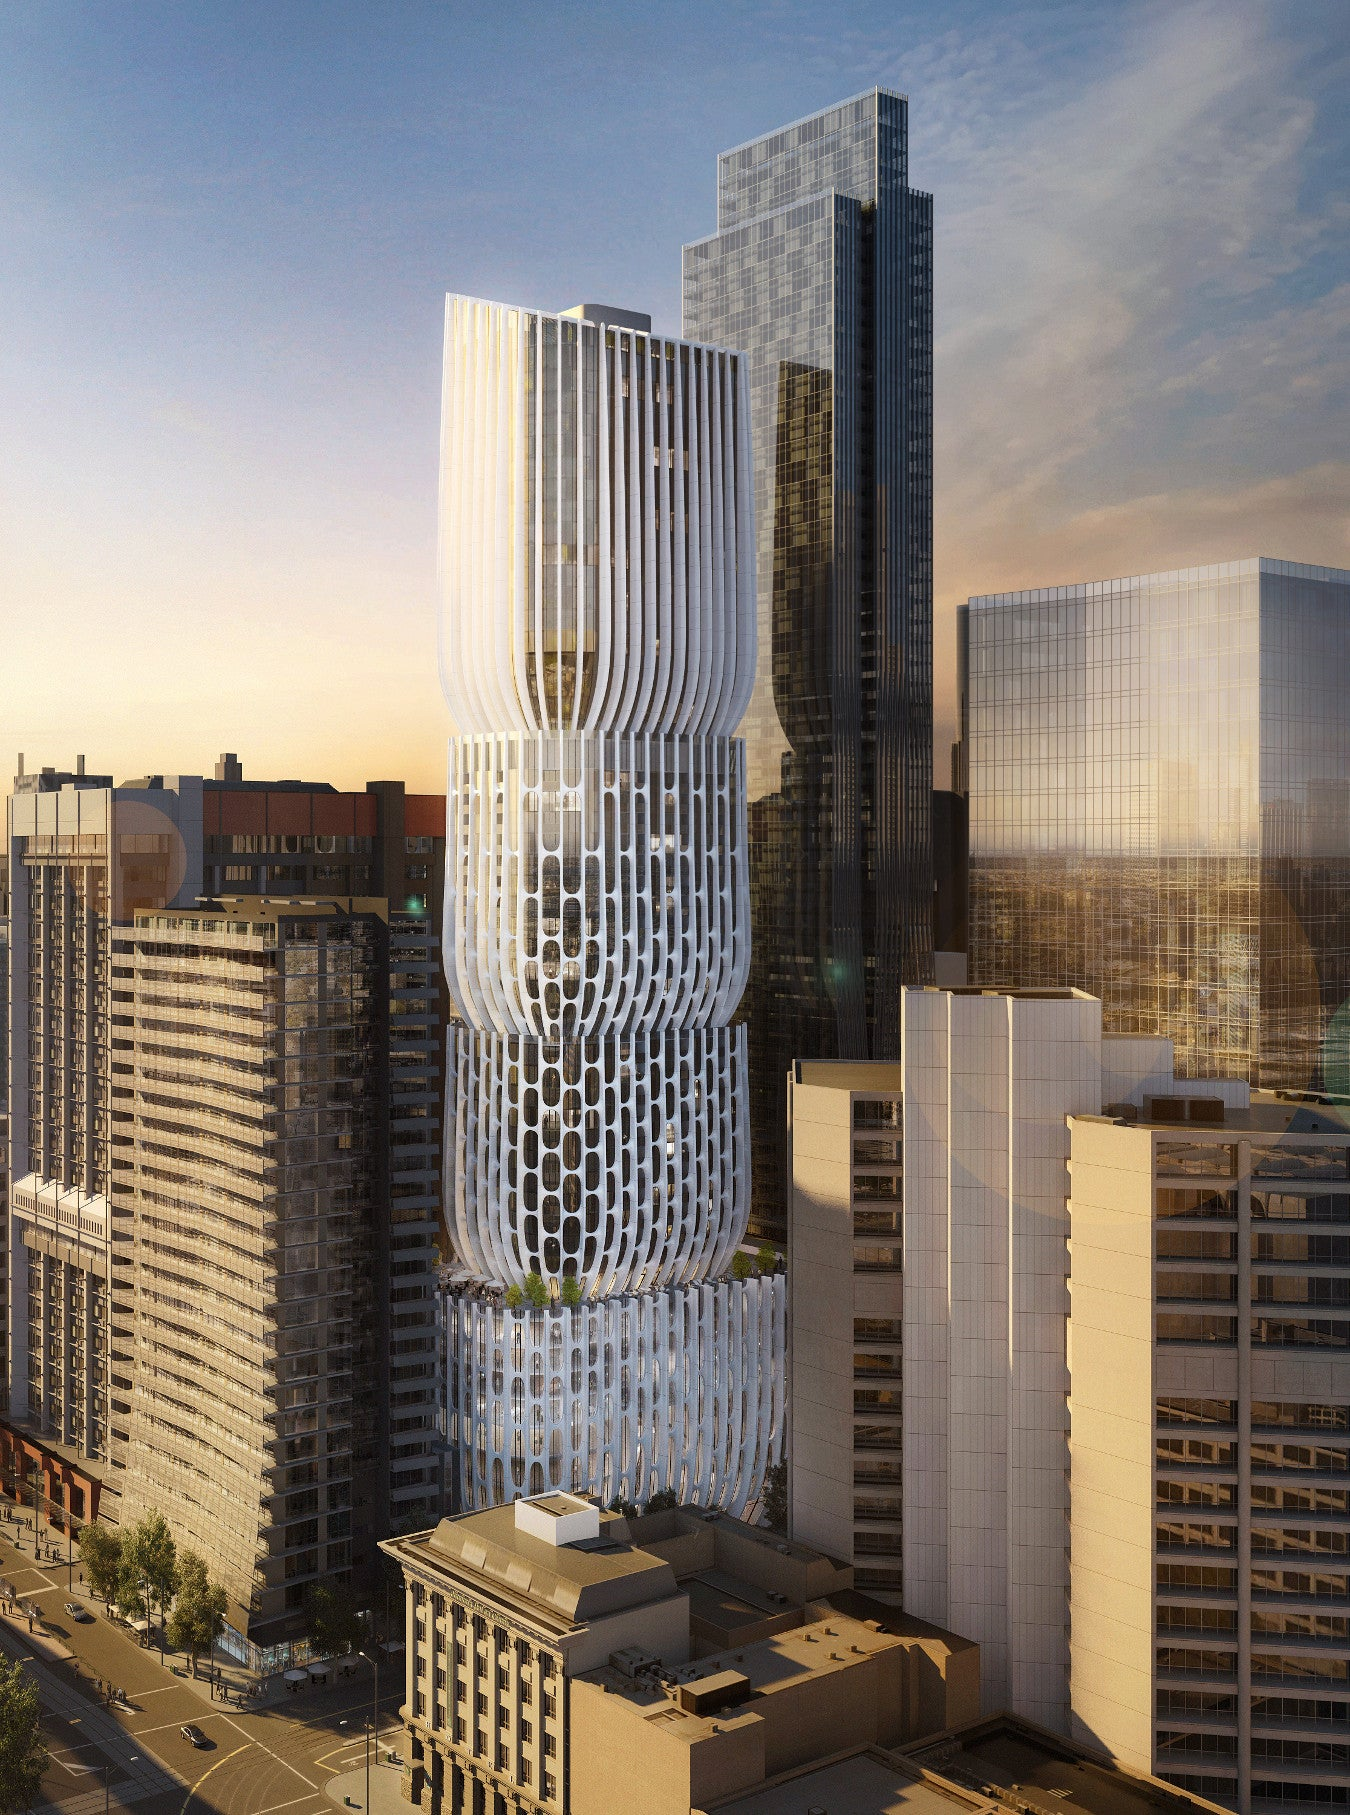 Zaha Hadid's New Skyscraper Looks Like a Big Huge Earplug